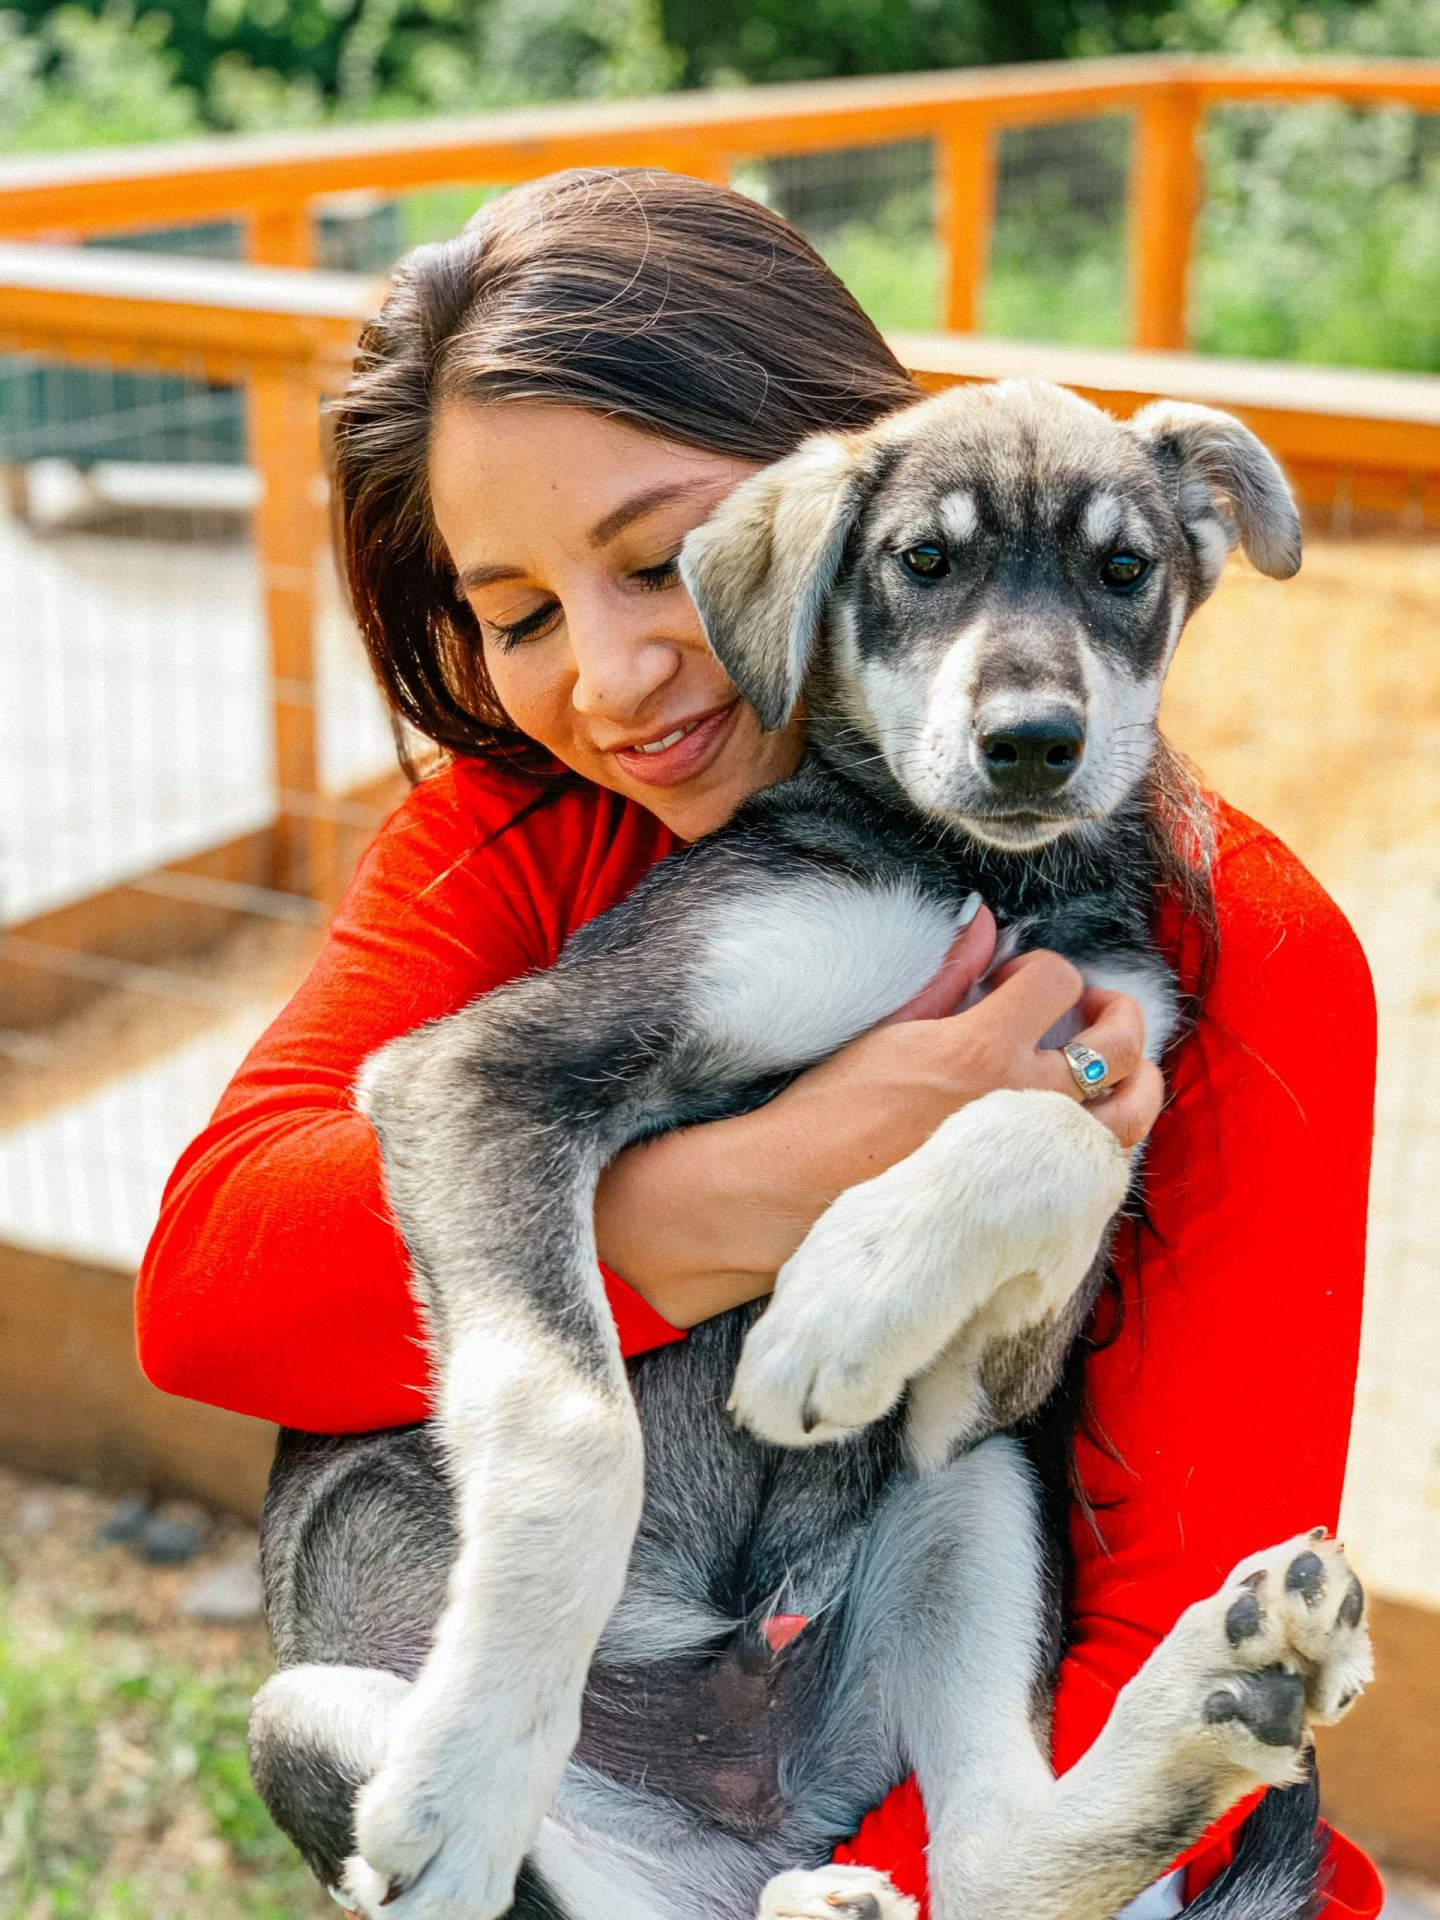 Cuddle with kennel dogs at Fairbanks, Alaska's Paws For Adventure.